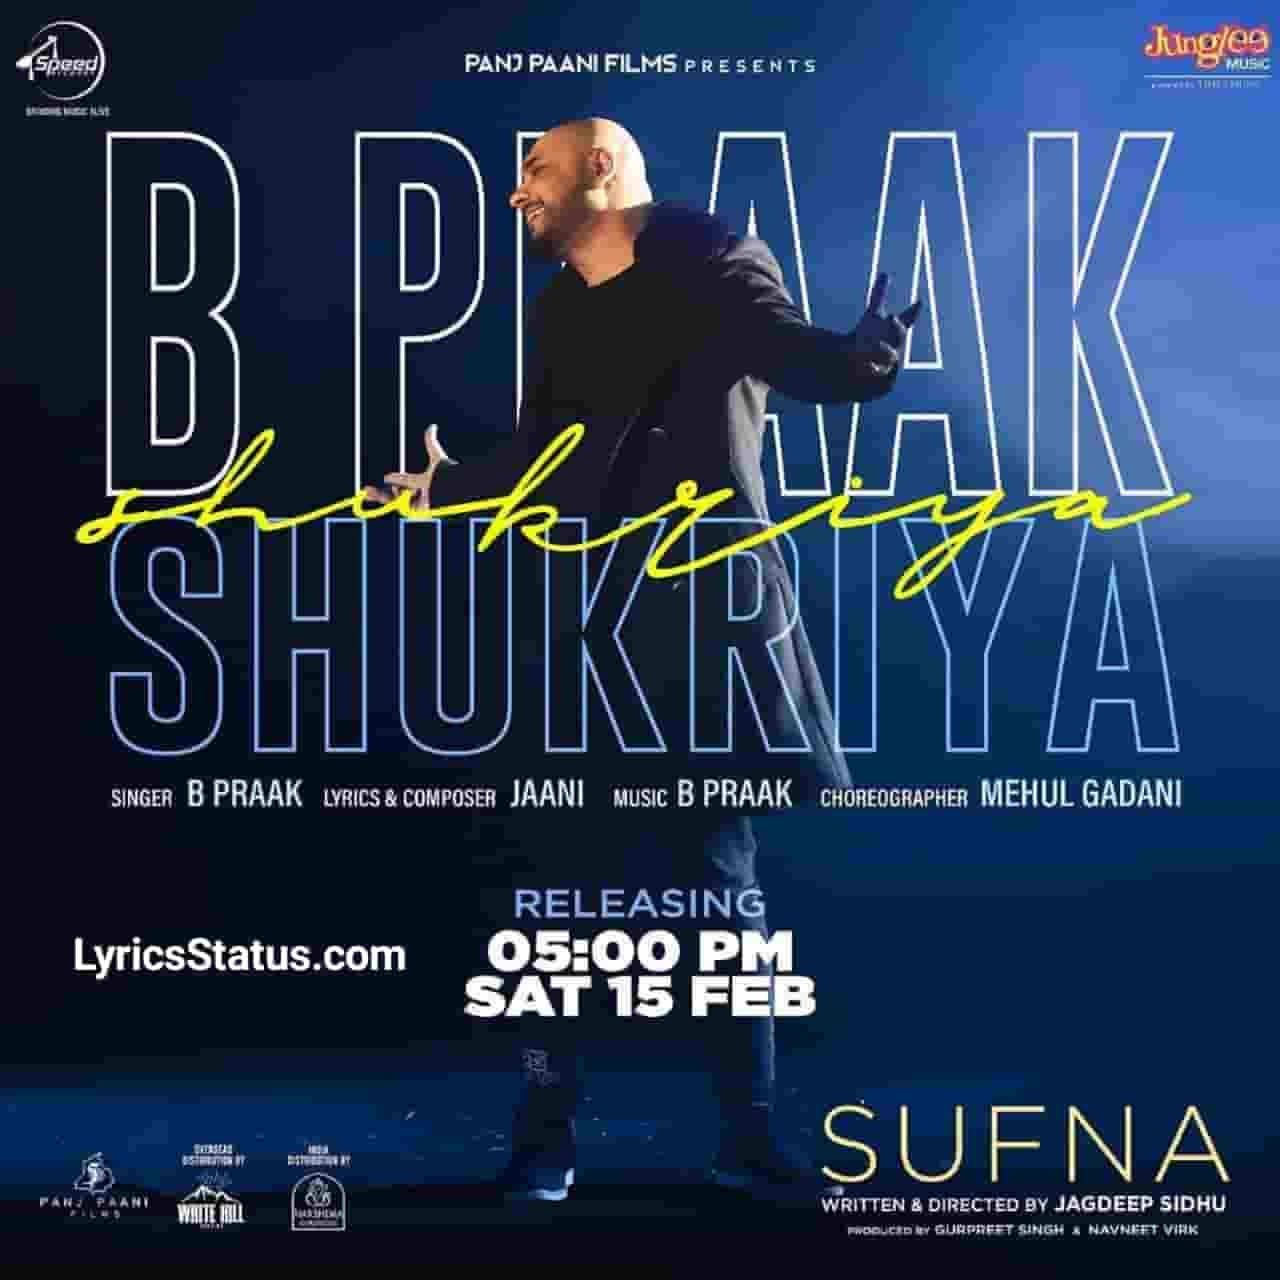 Jaani Ammy Virk Shukriya B Praak Lyrics Status Download Video Latest punjabi song Shukriya, Shukriya Tera status punjabi song Shukriya of B Praak